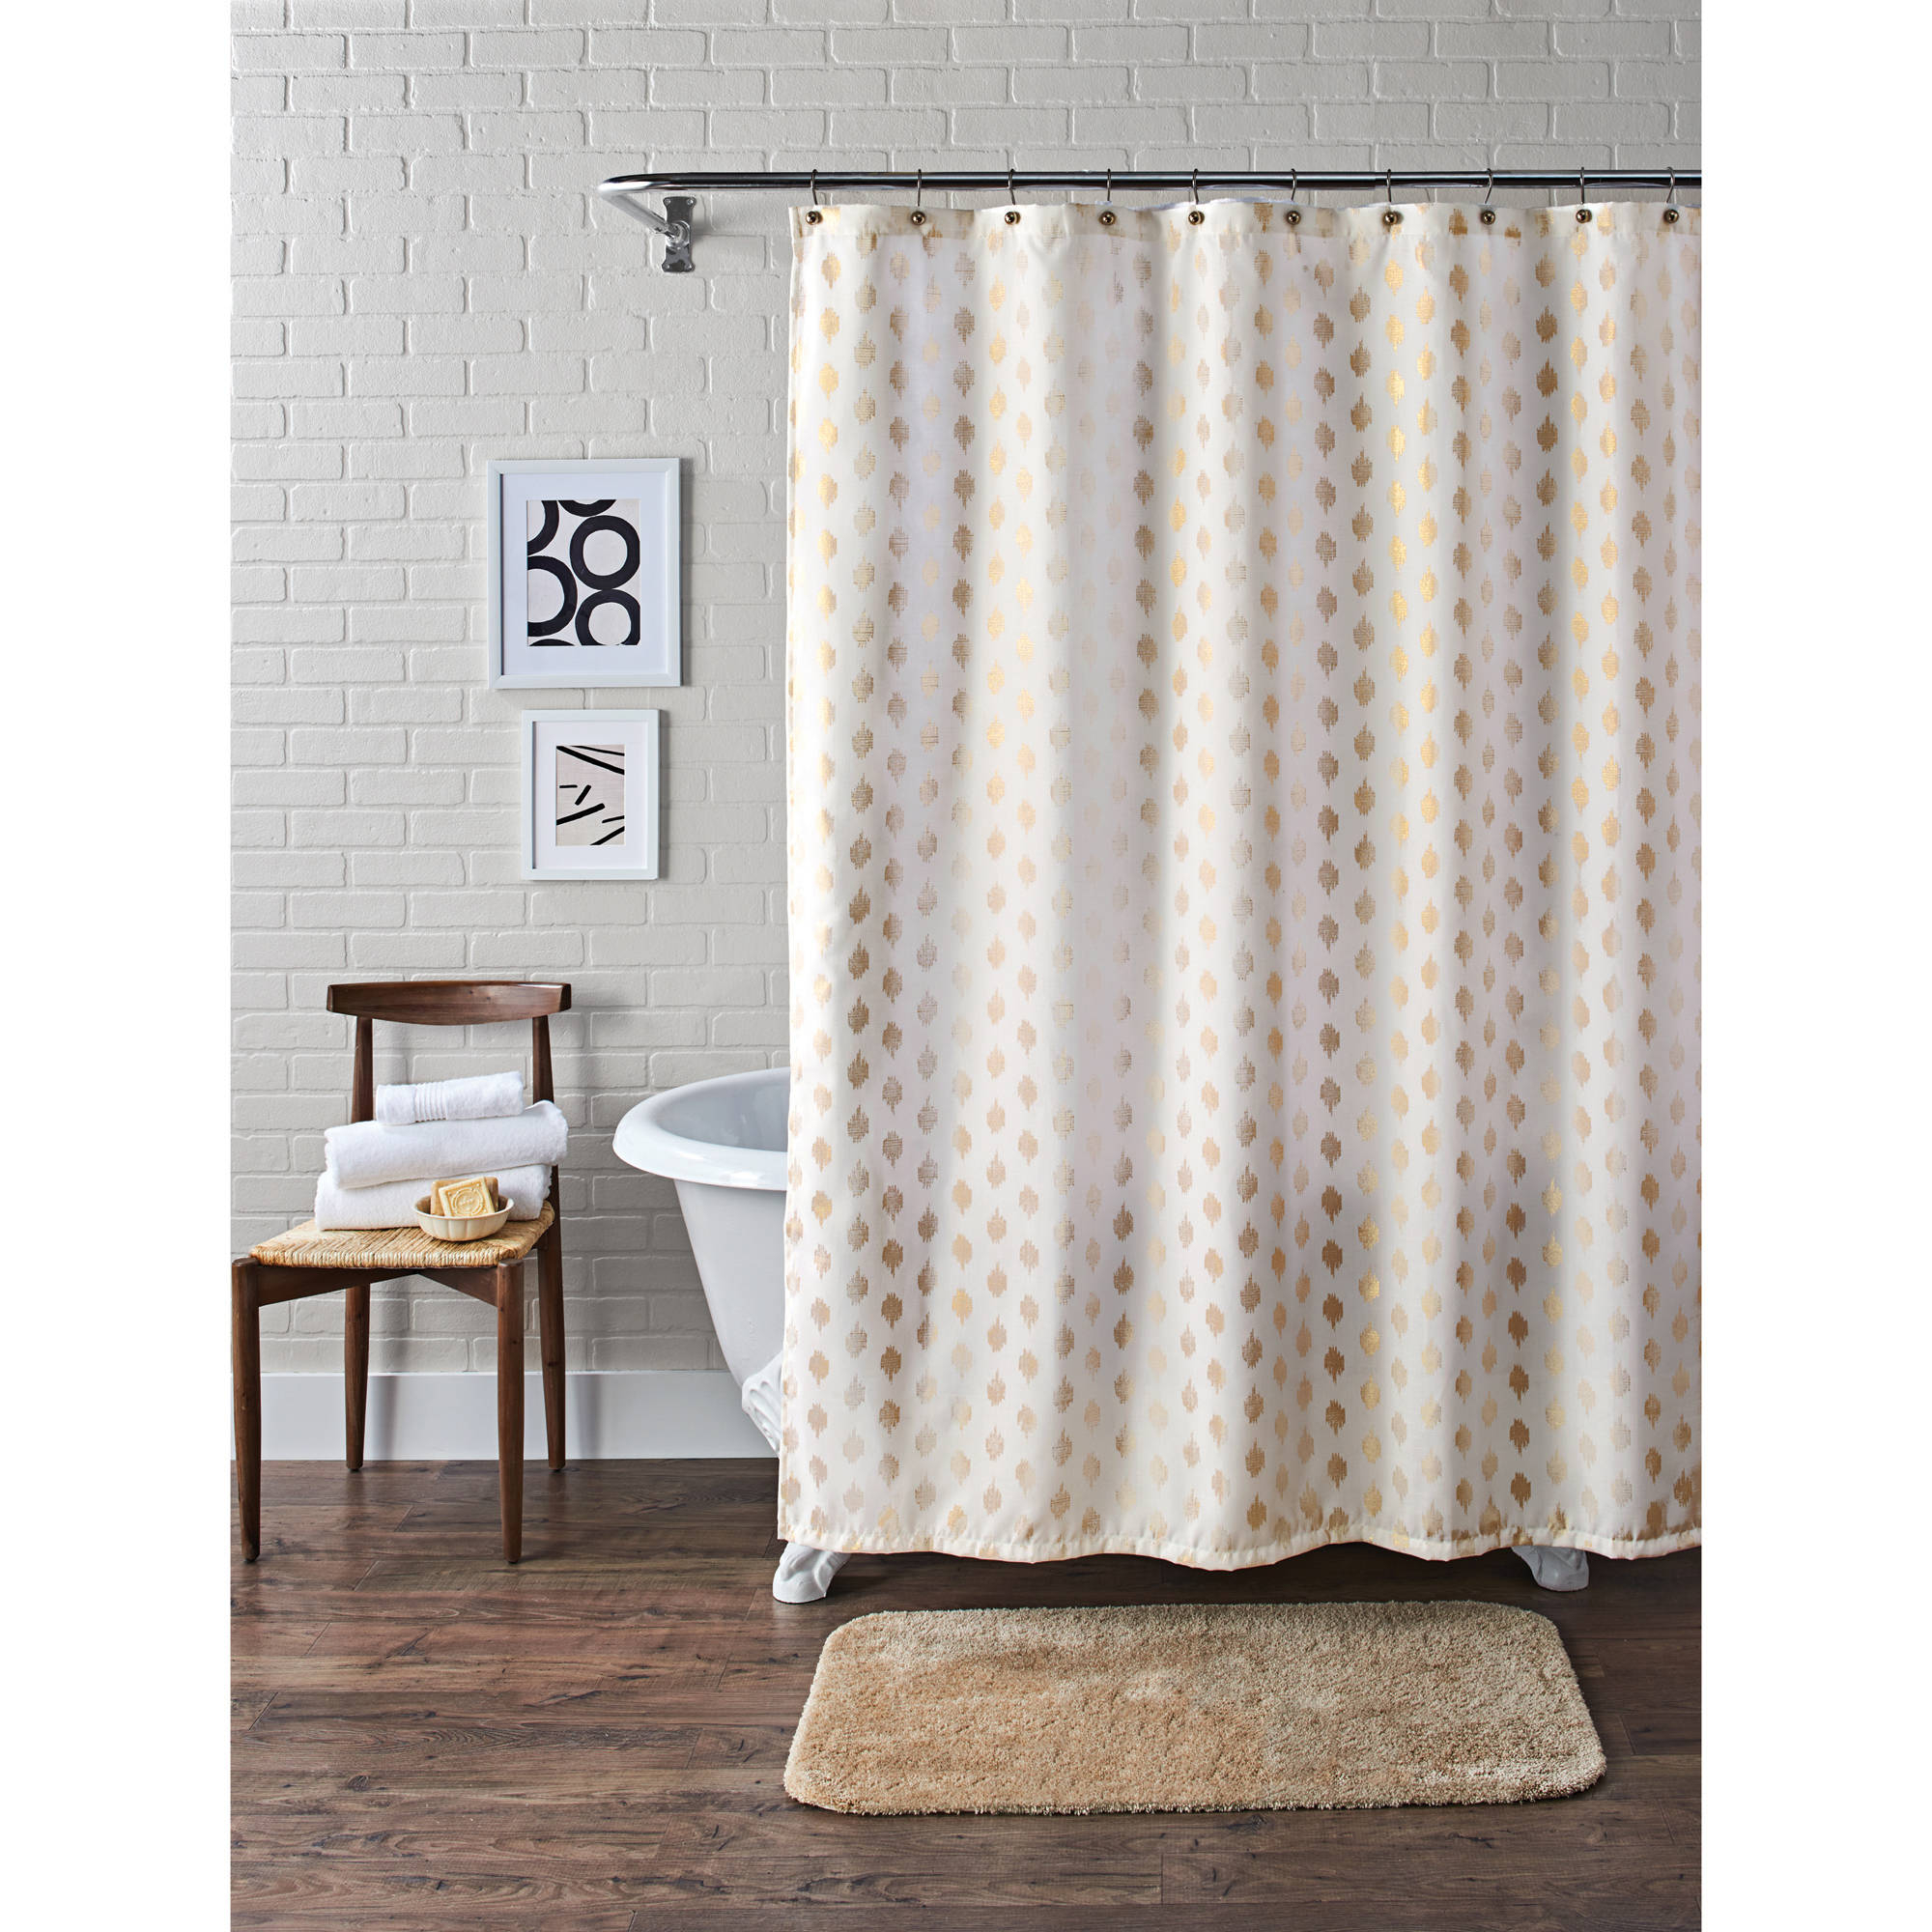 White Double Swag Shower Curtain Valance • Shower Curtains Ideas